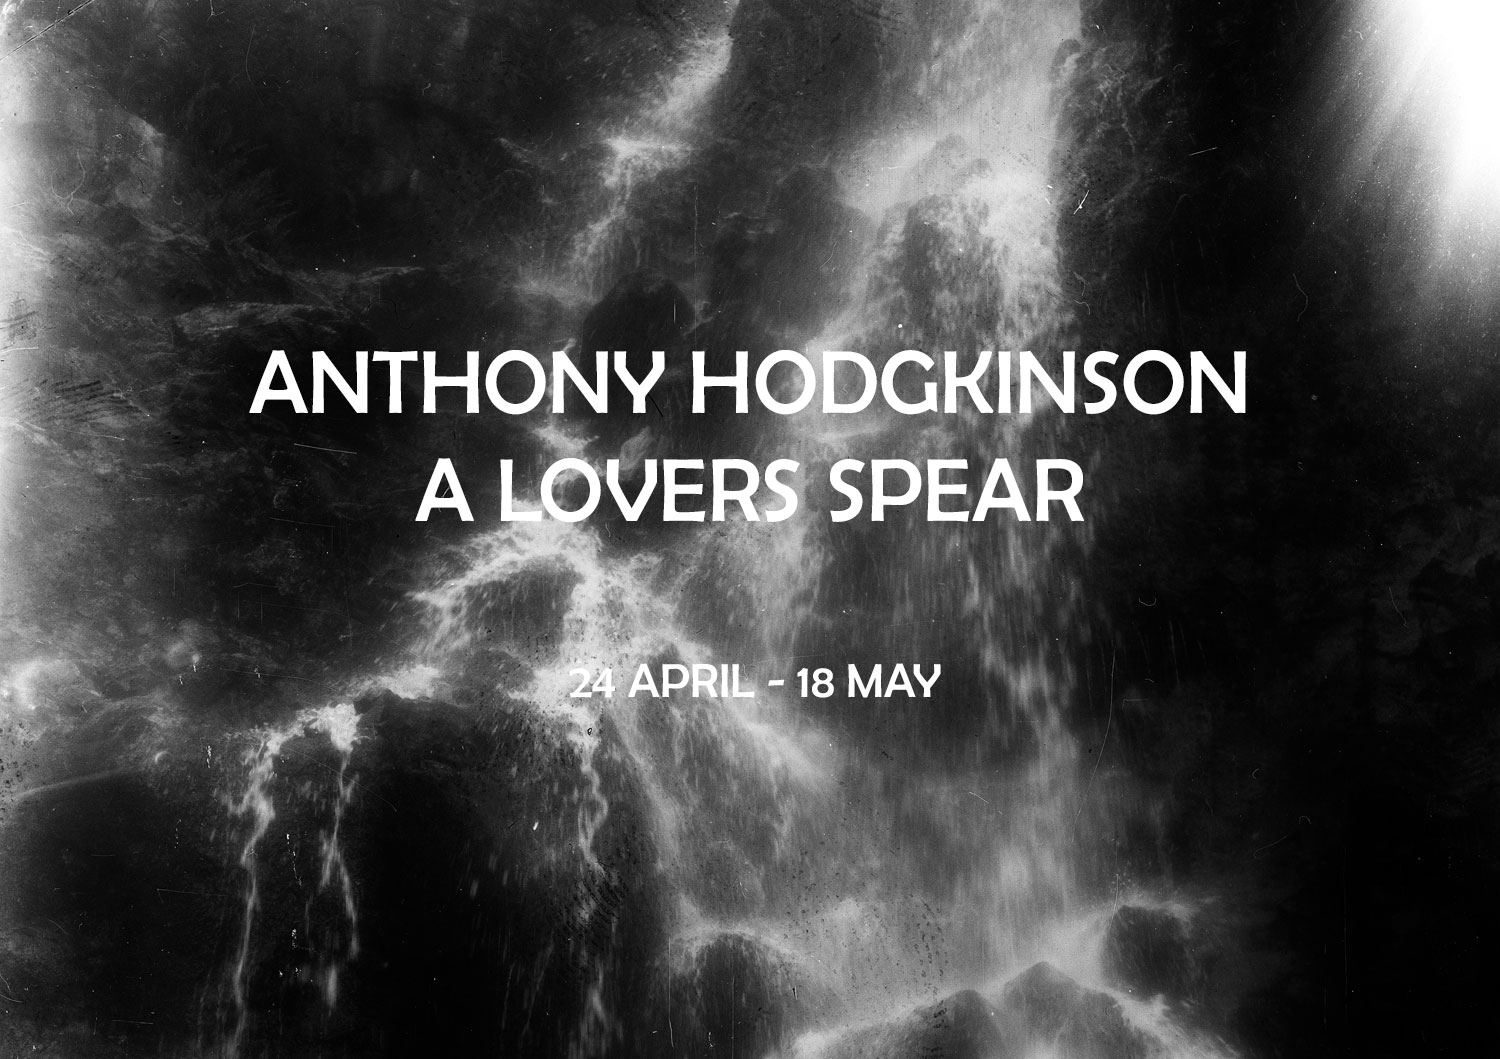 ANTHONY HODGKINSON: A LOVERS SPEAR 24 APRIL – 18 MAY